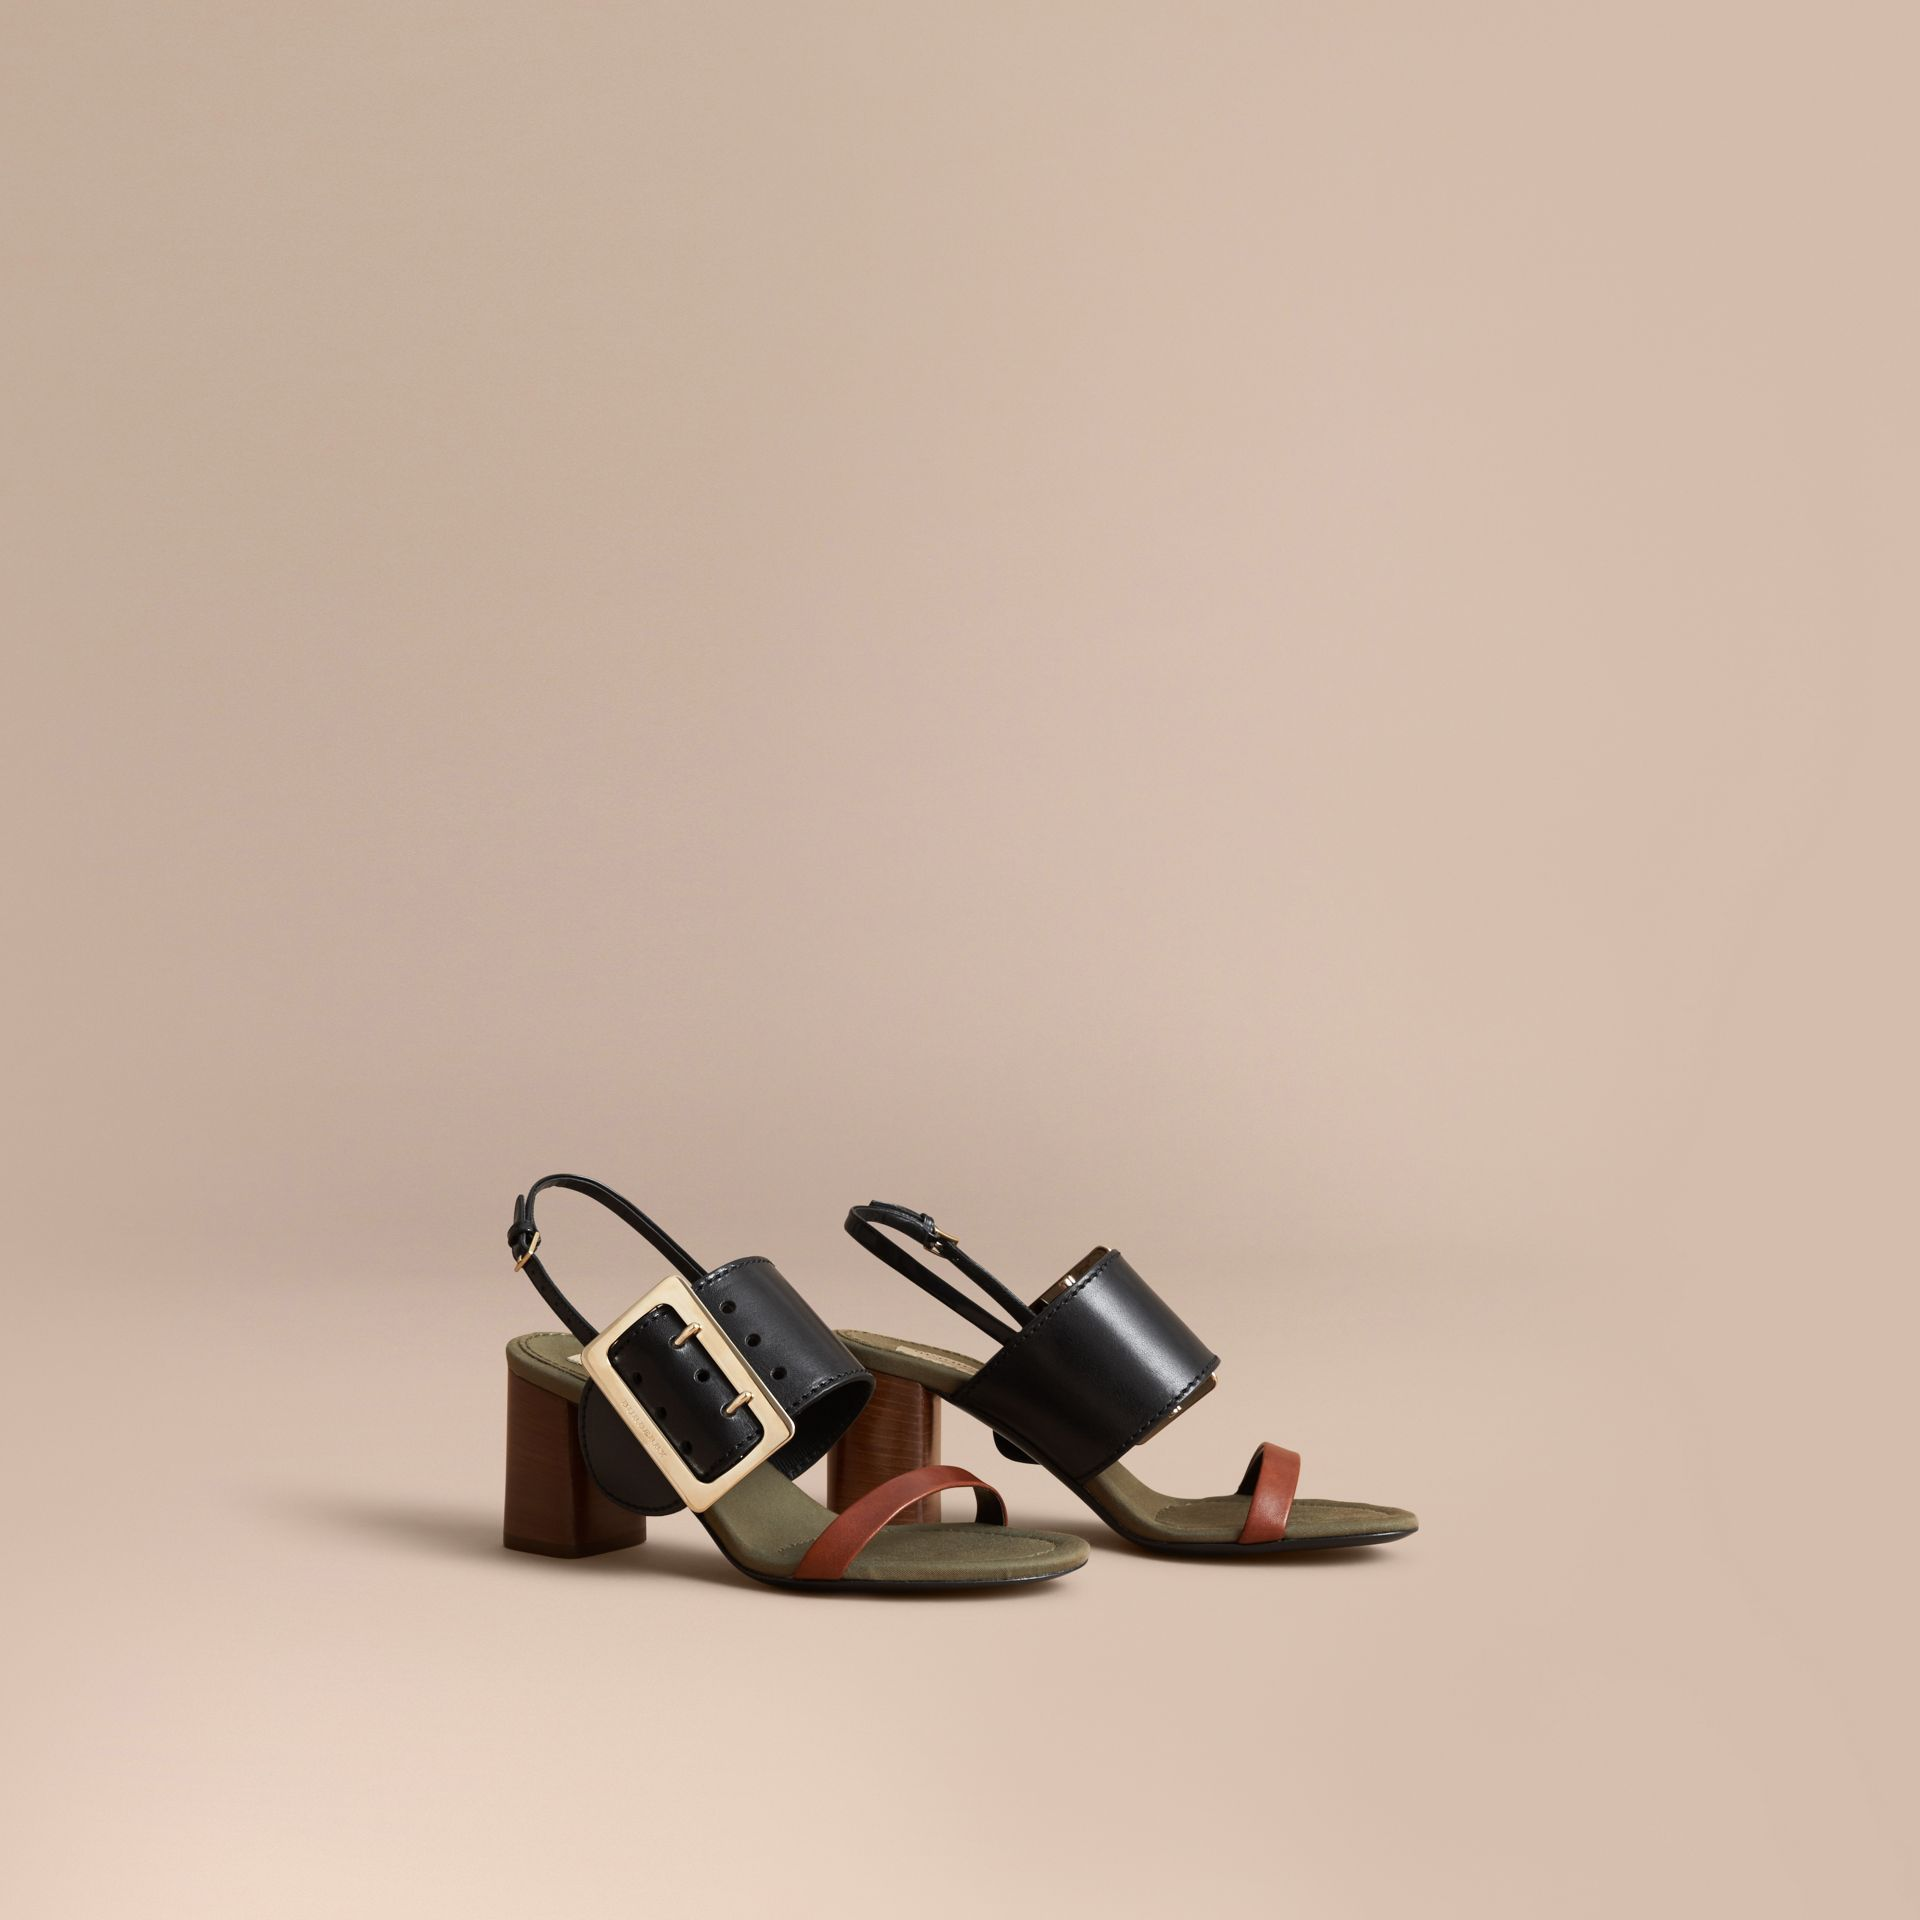 Buckle Detail Leather Sandals in Black - Women | Burberry Canada - gallery image 1